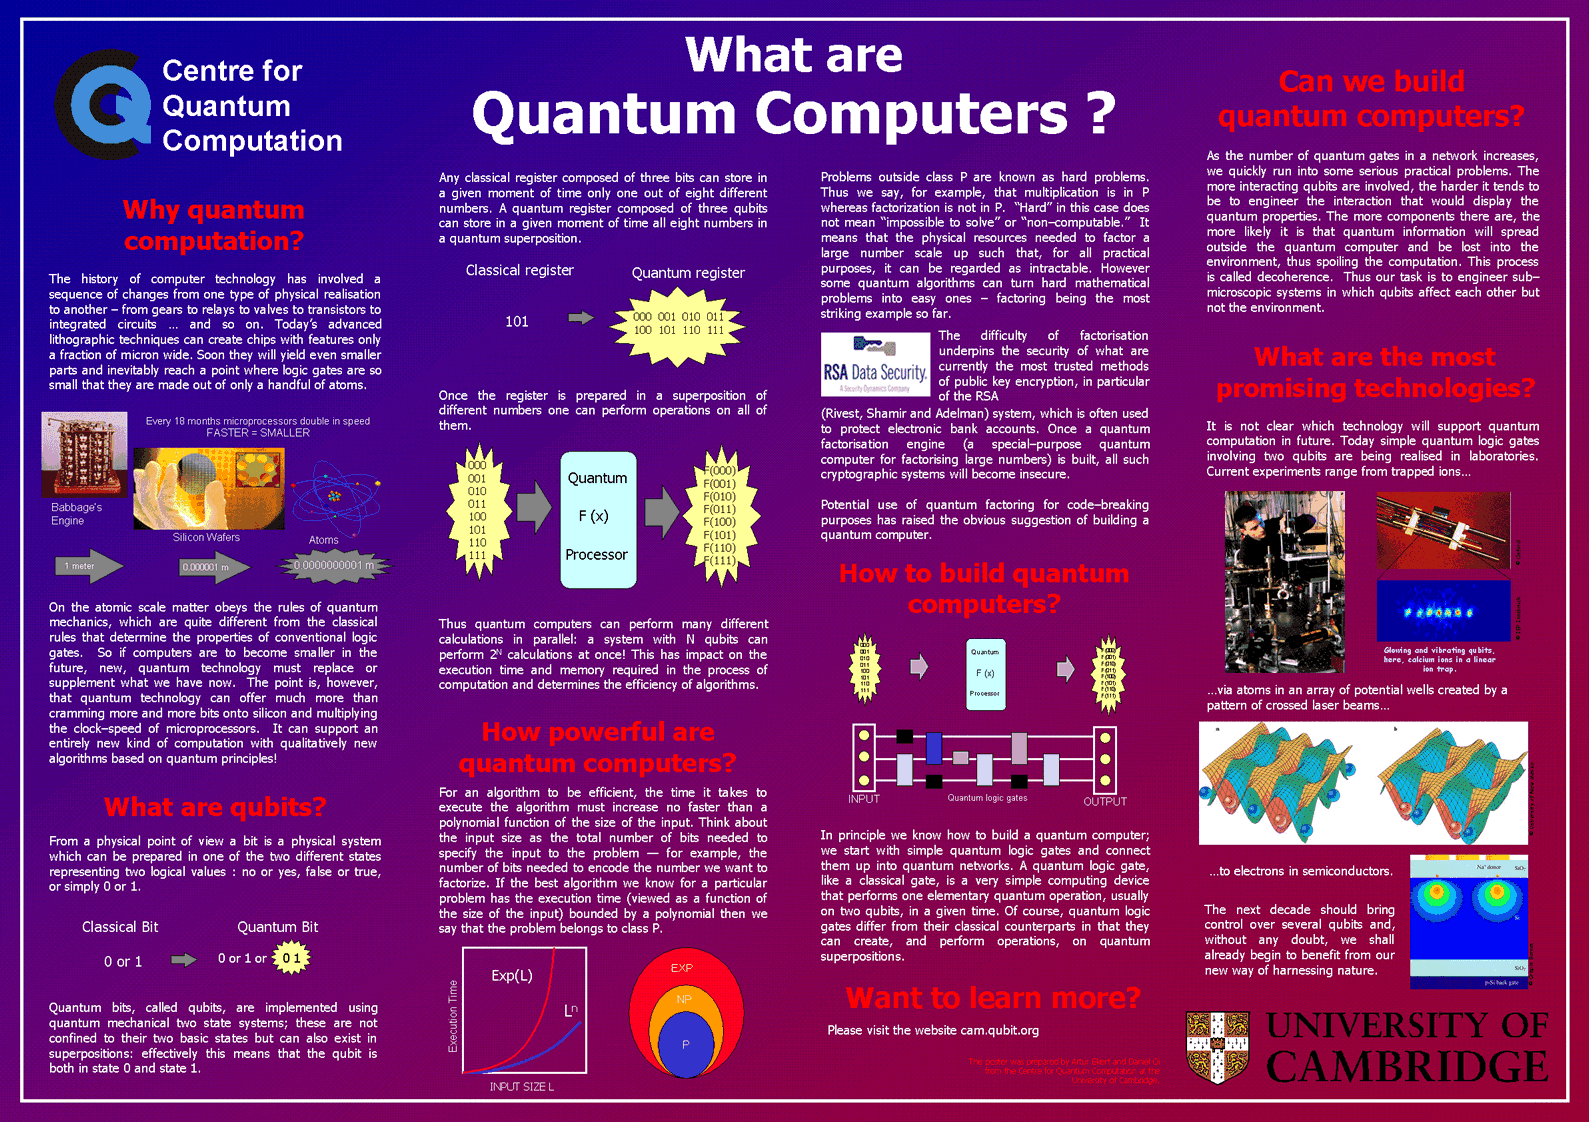 Pic 5 PUB_CQC_Cambridge_Quantum_Computing_Explained_lg